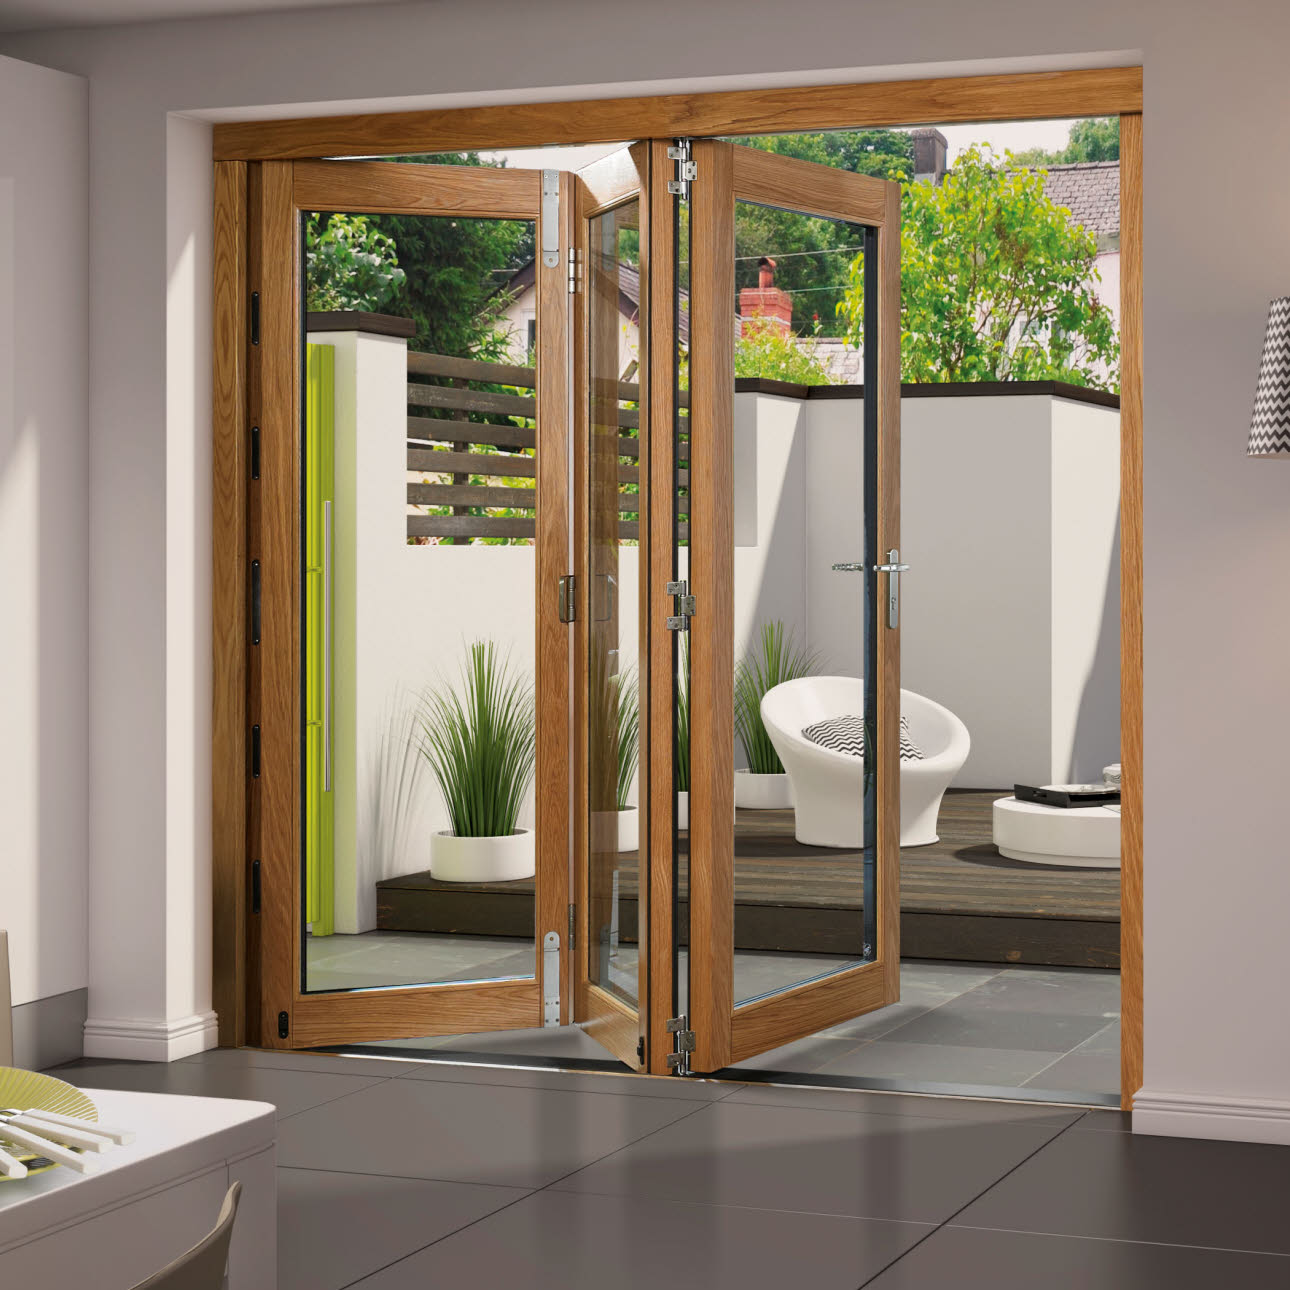 Aluminium clad oak folding kitchen door